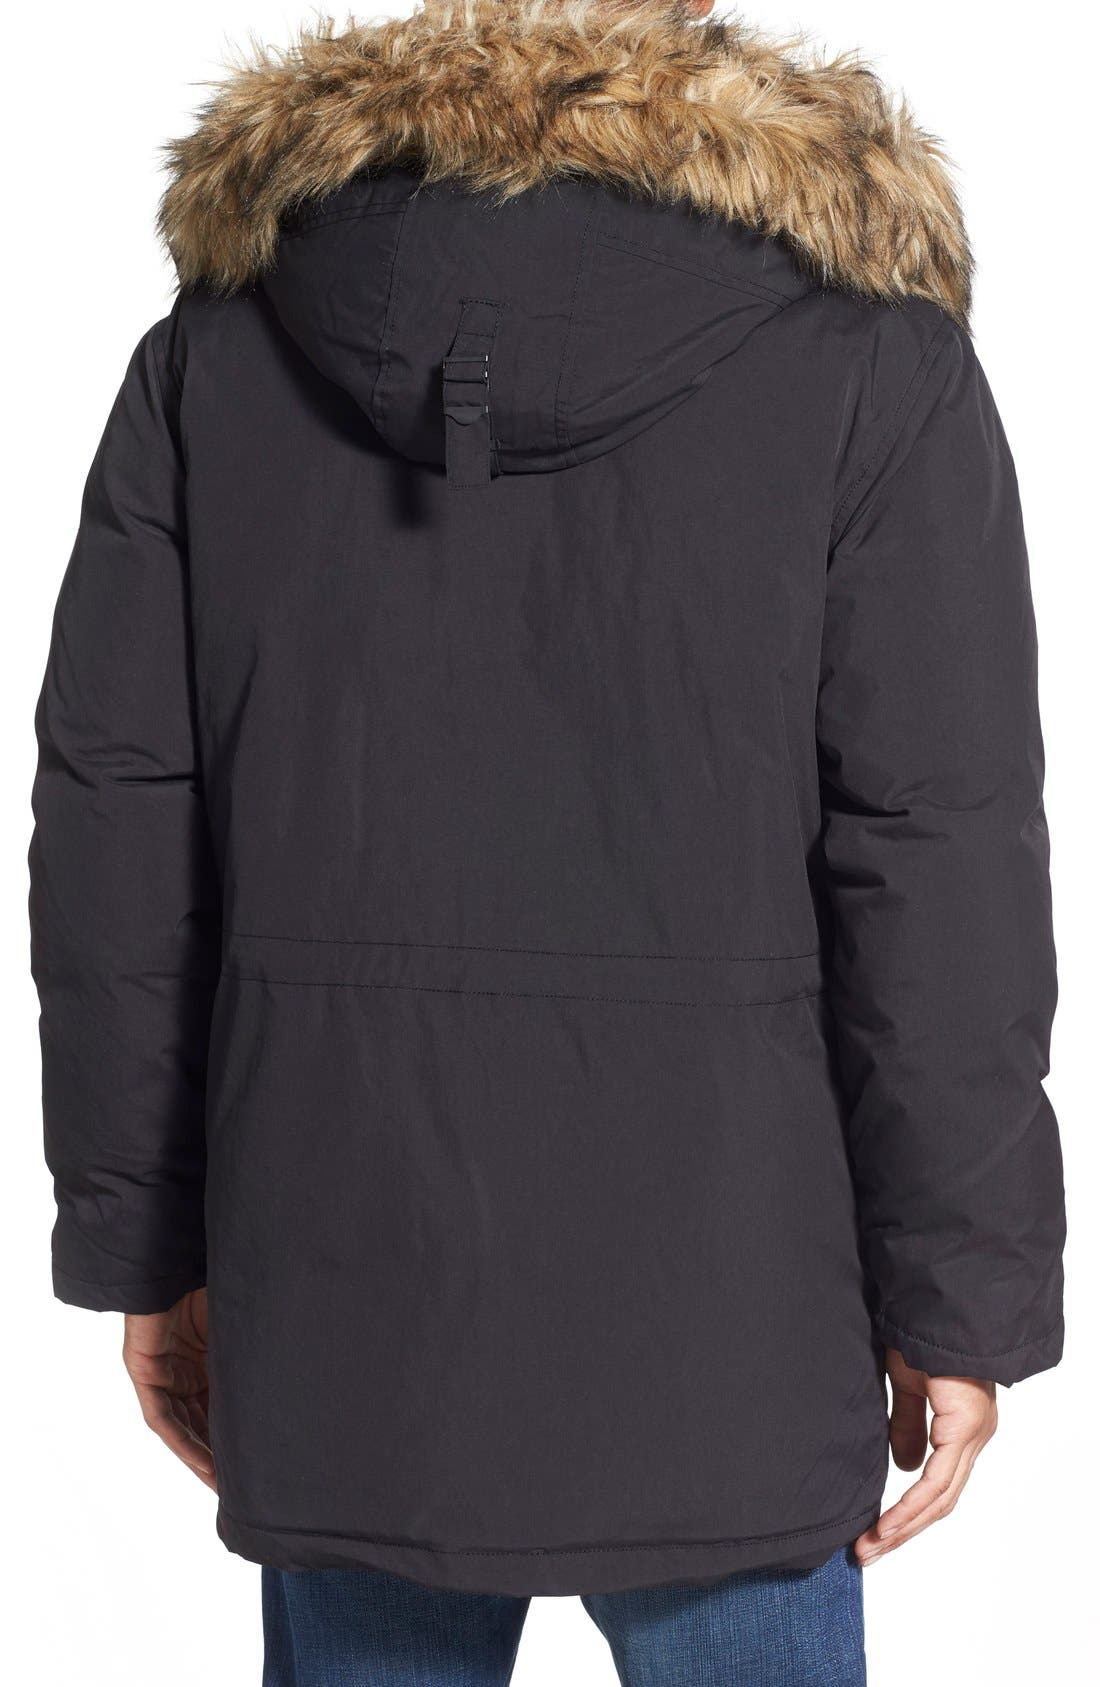 Alternate Image 2  - Schott NYC 'Iceberg' Water Resistant Down Parka with Faux Fur Trim